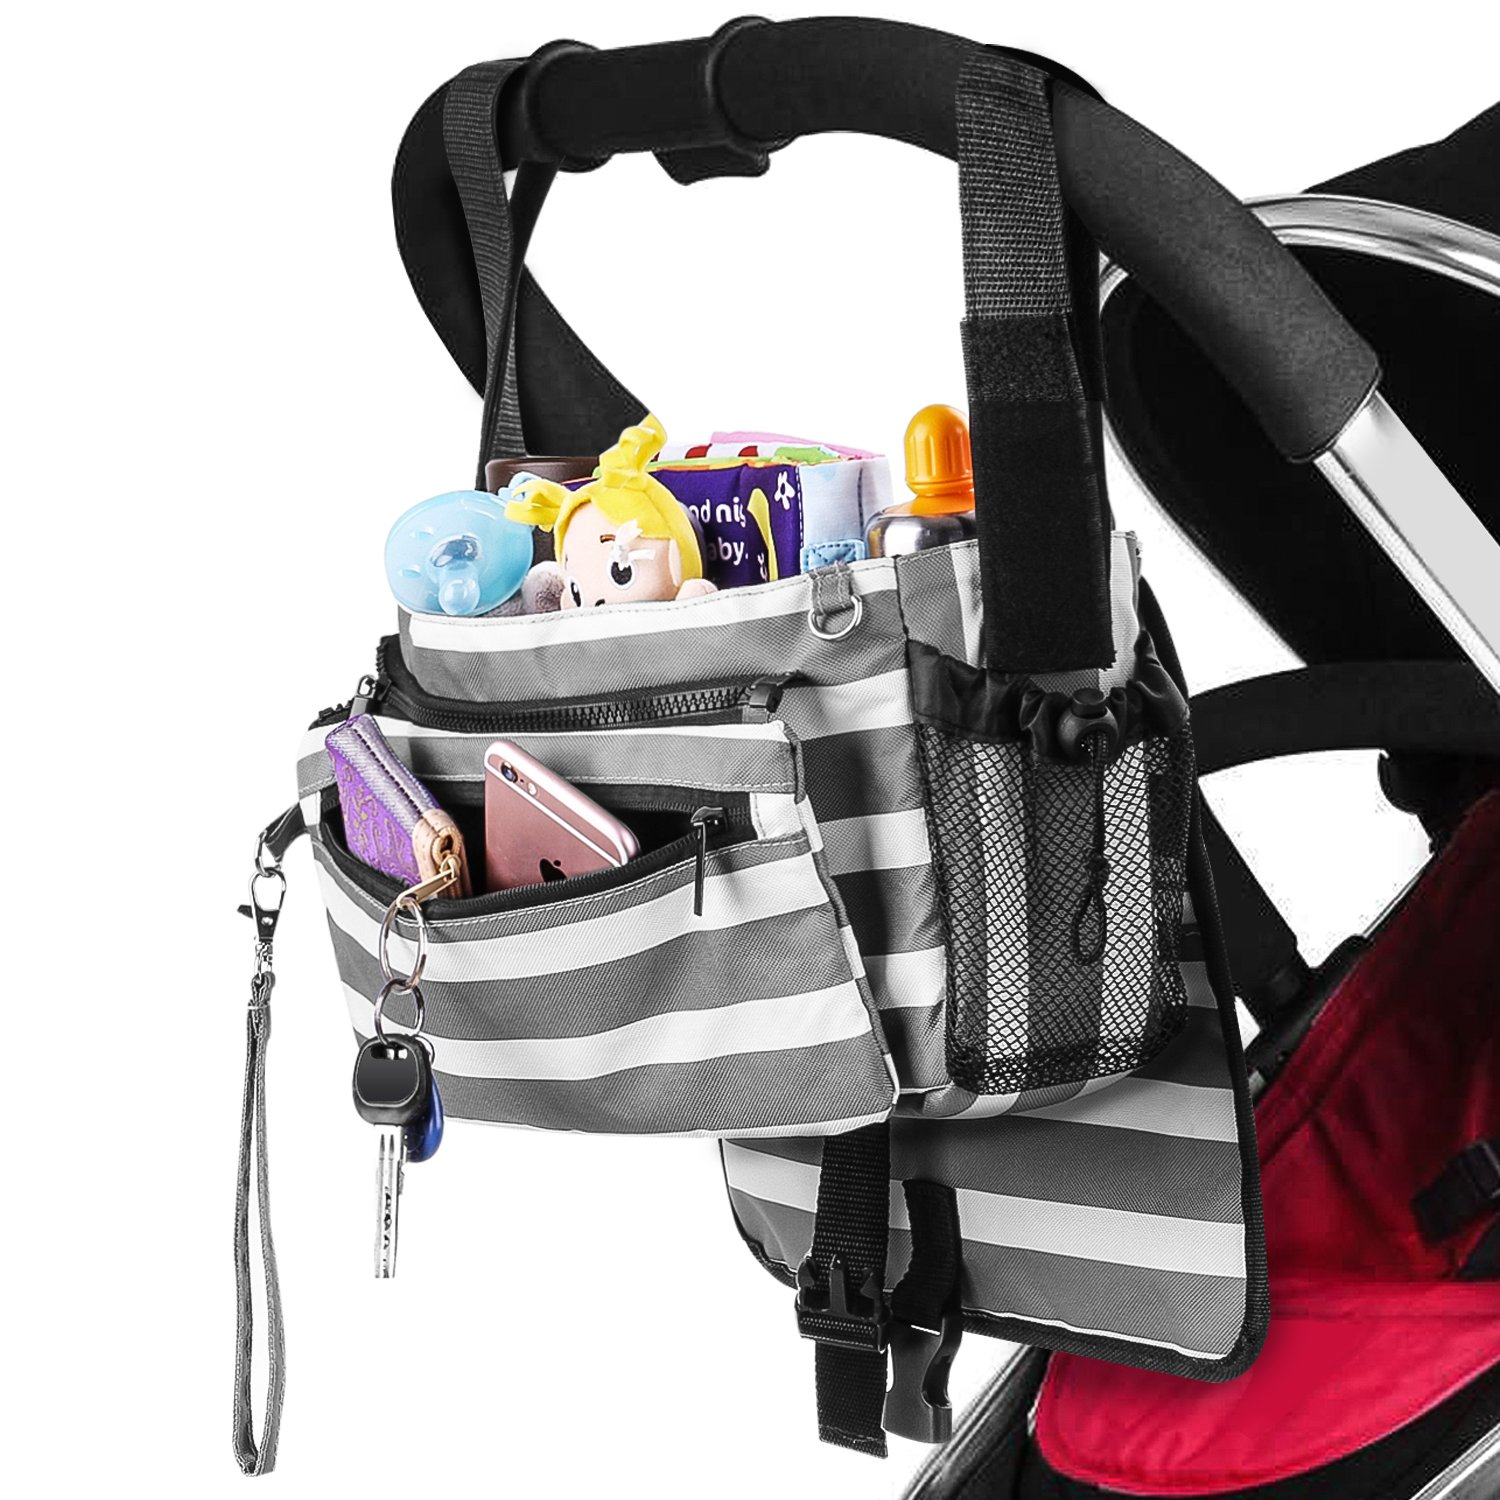 Zooawa Universal Baby Stroller Diaper Bag Storage Organizer with Multi-Pockets